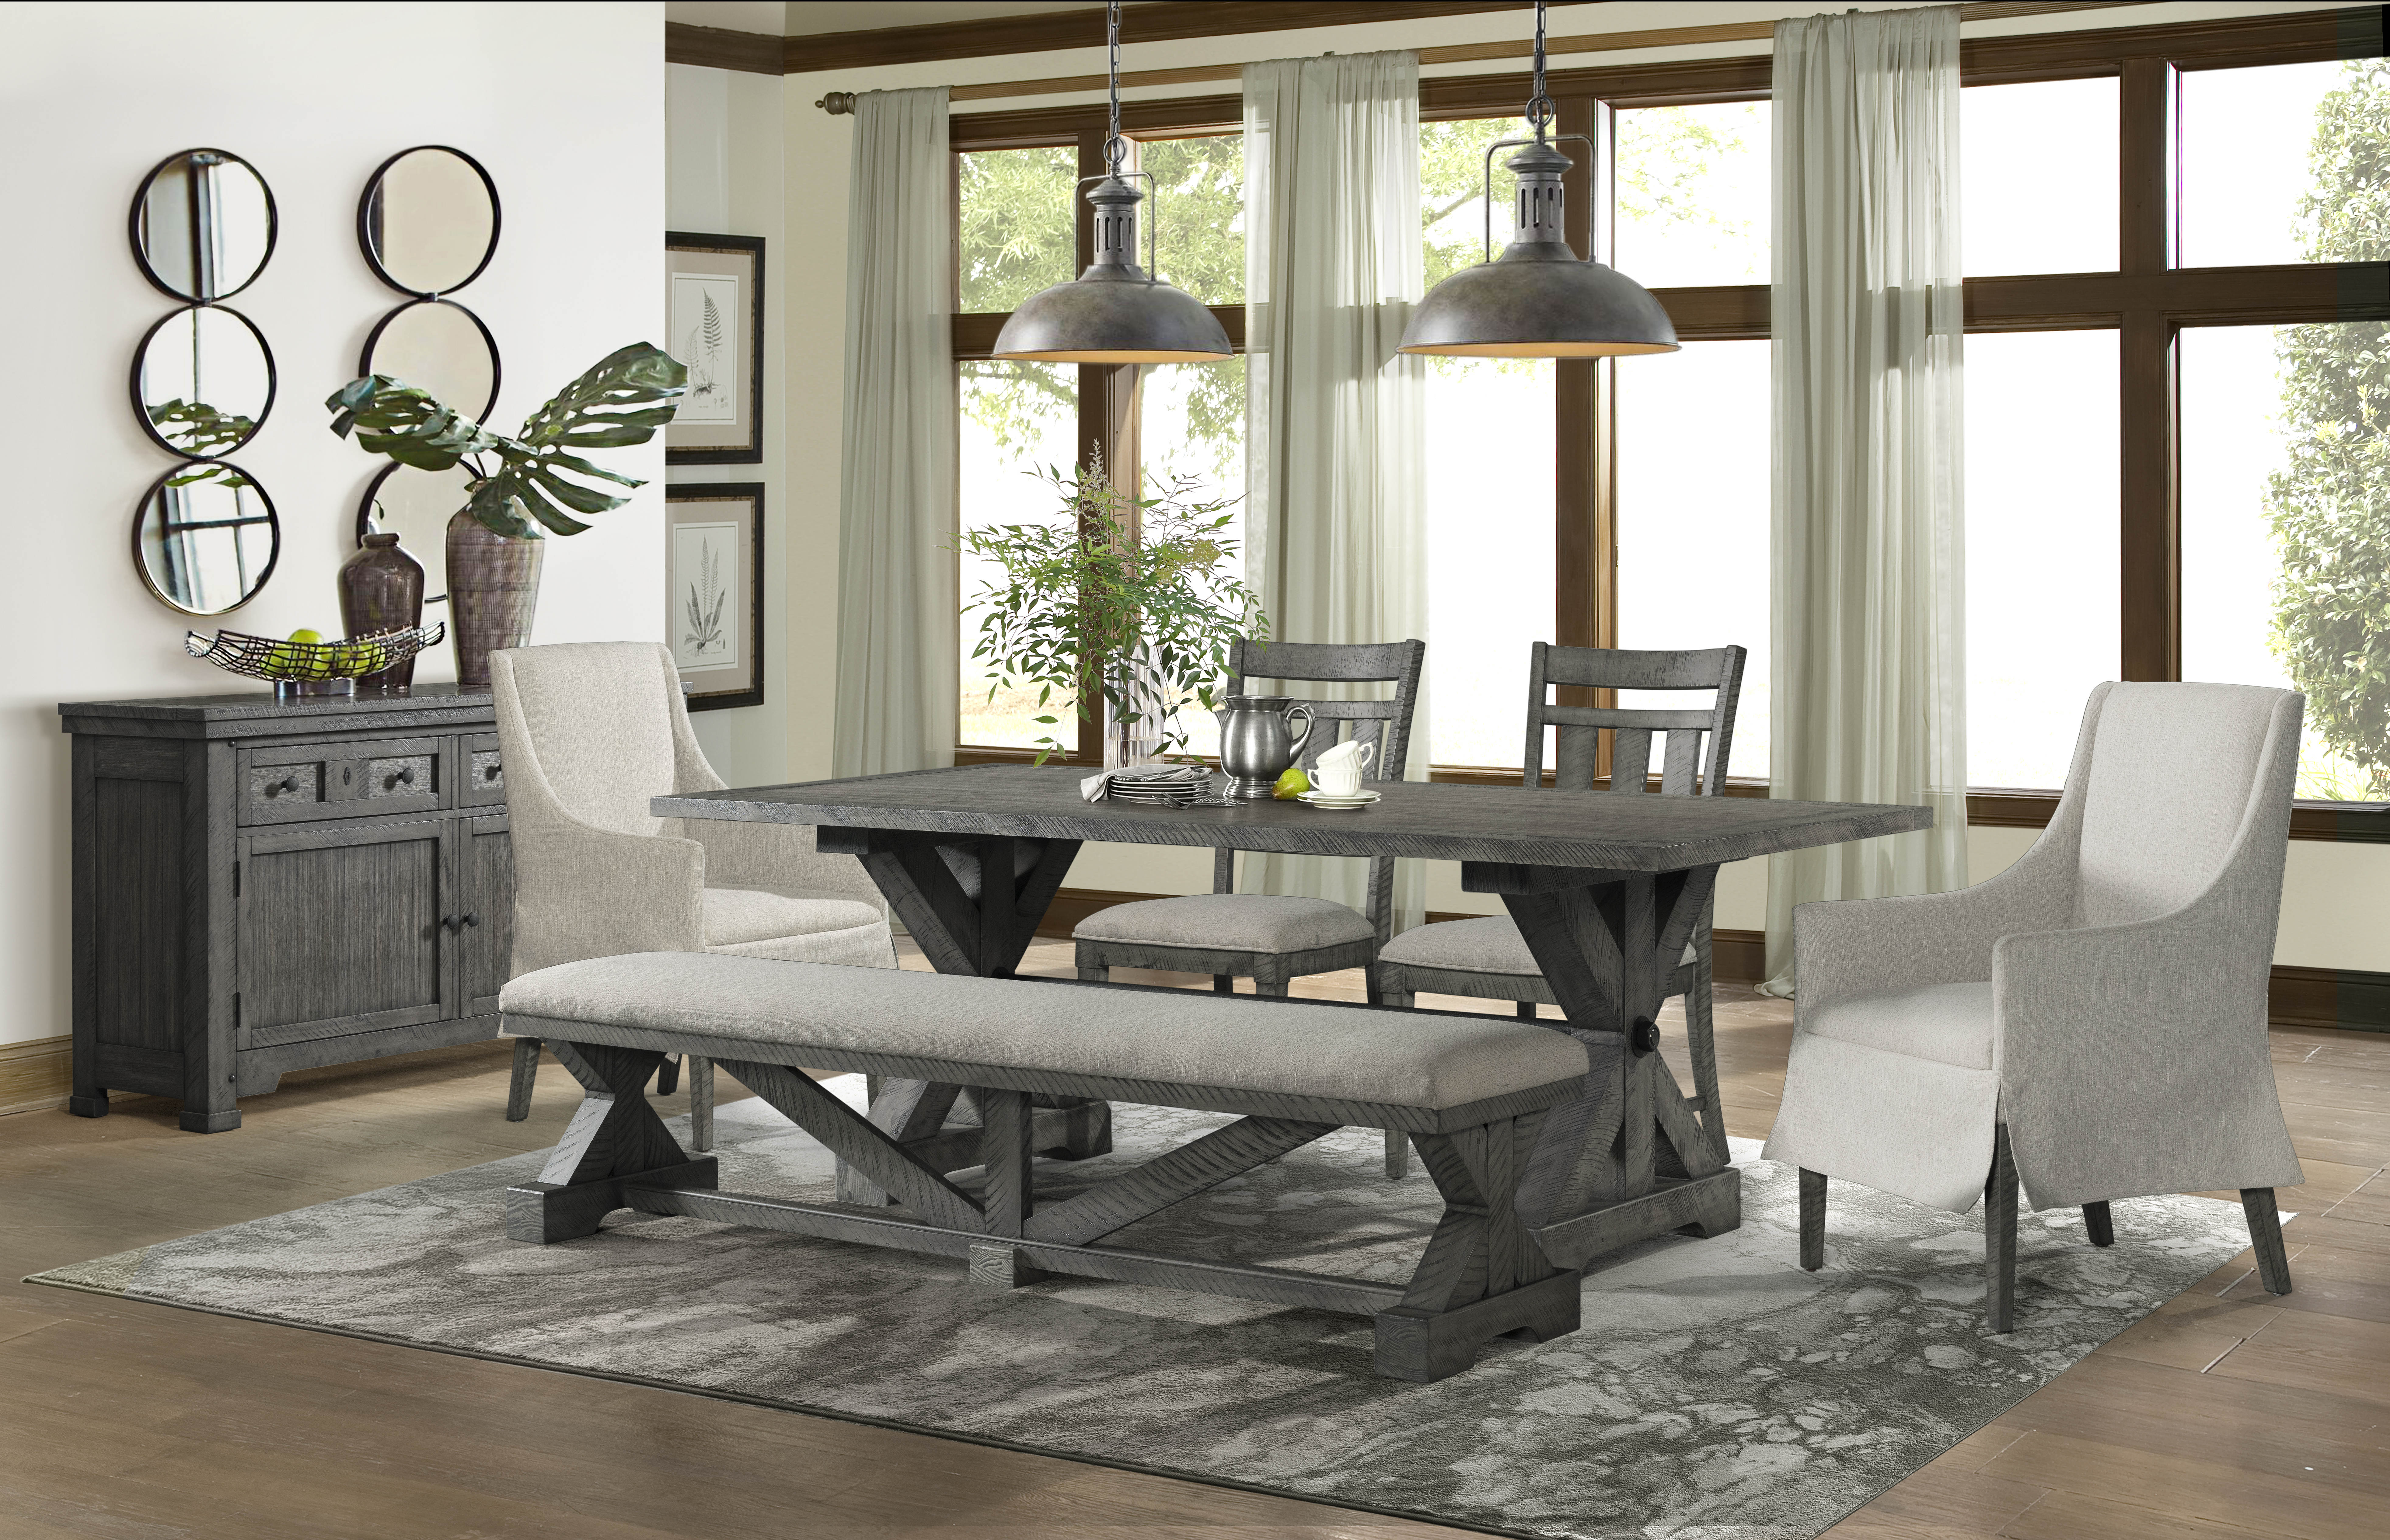 Lane Furniture Old Forge Grey 6pc Dining Room Set with Host Chair